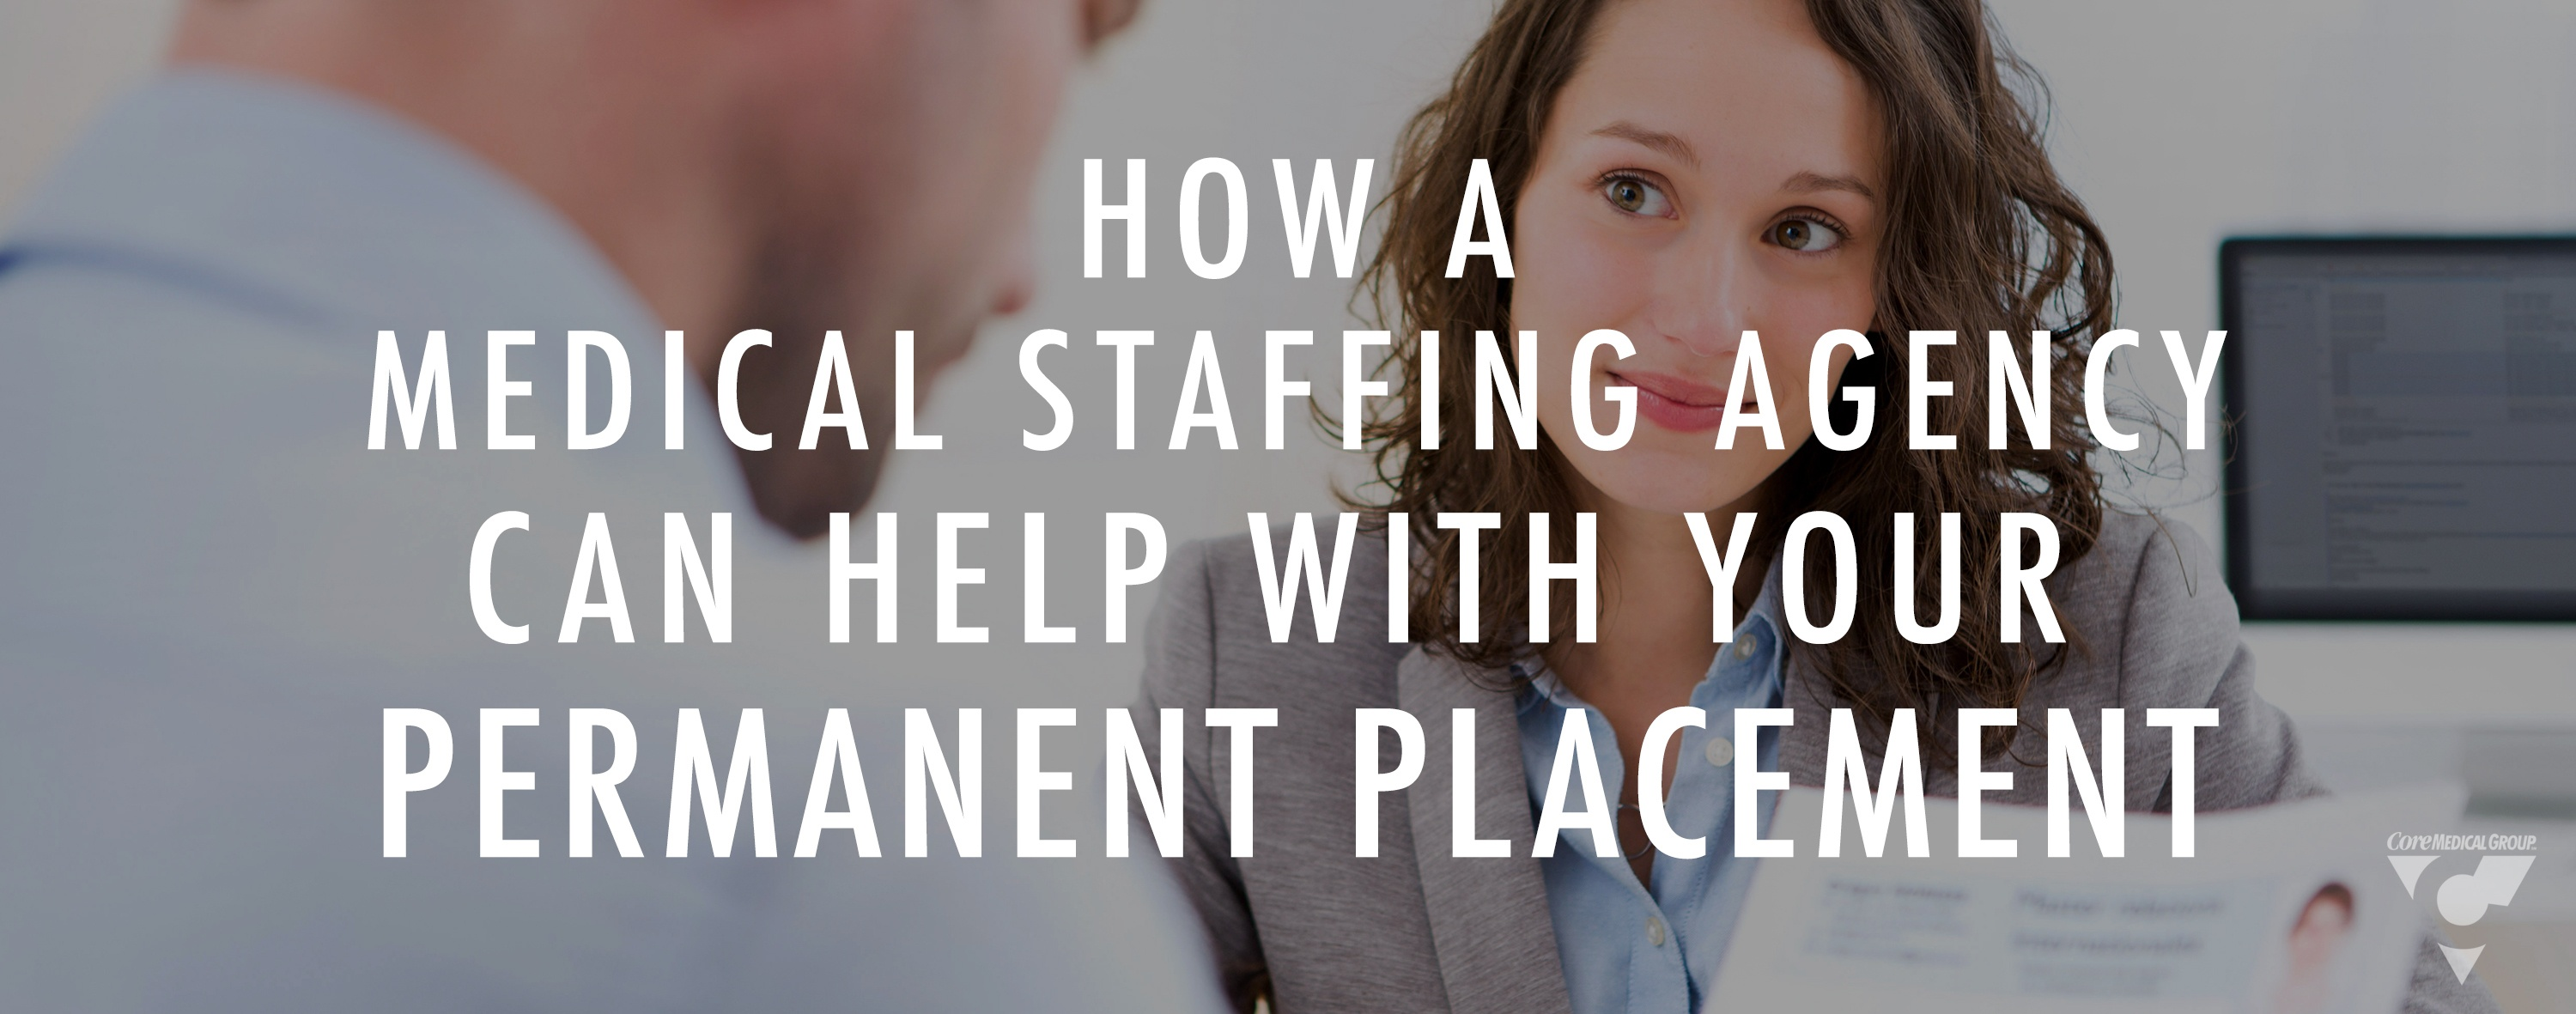 How a Medical Staffing Agency Can Help With Your Permanent Placement